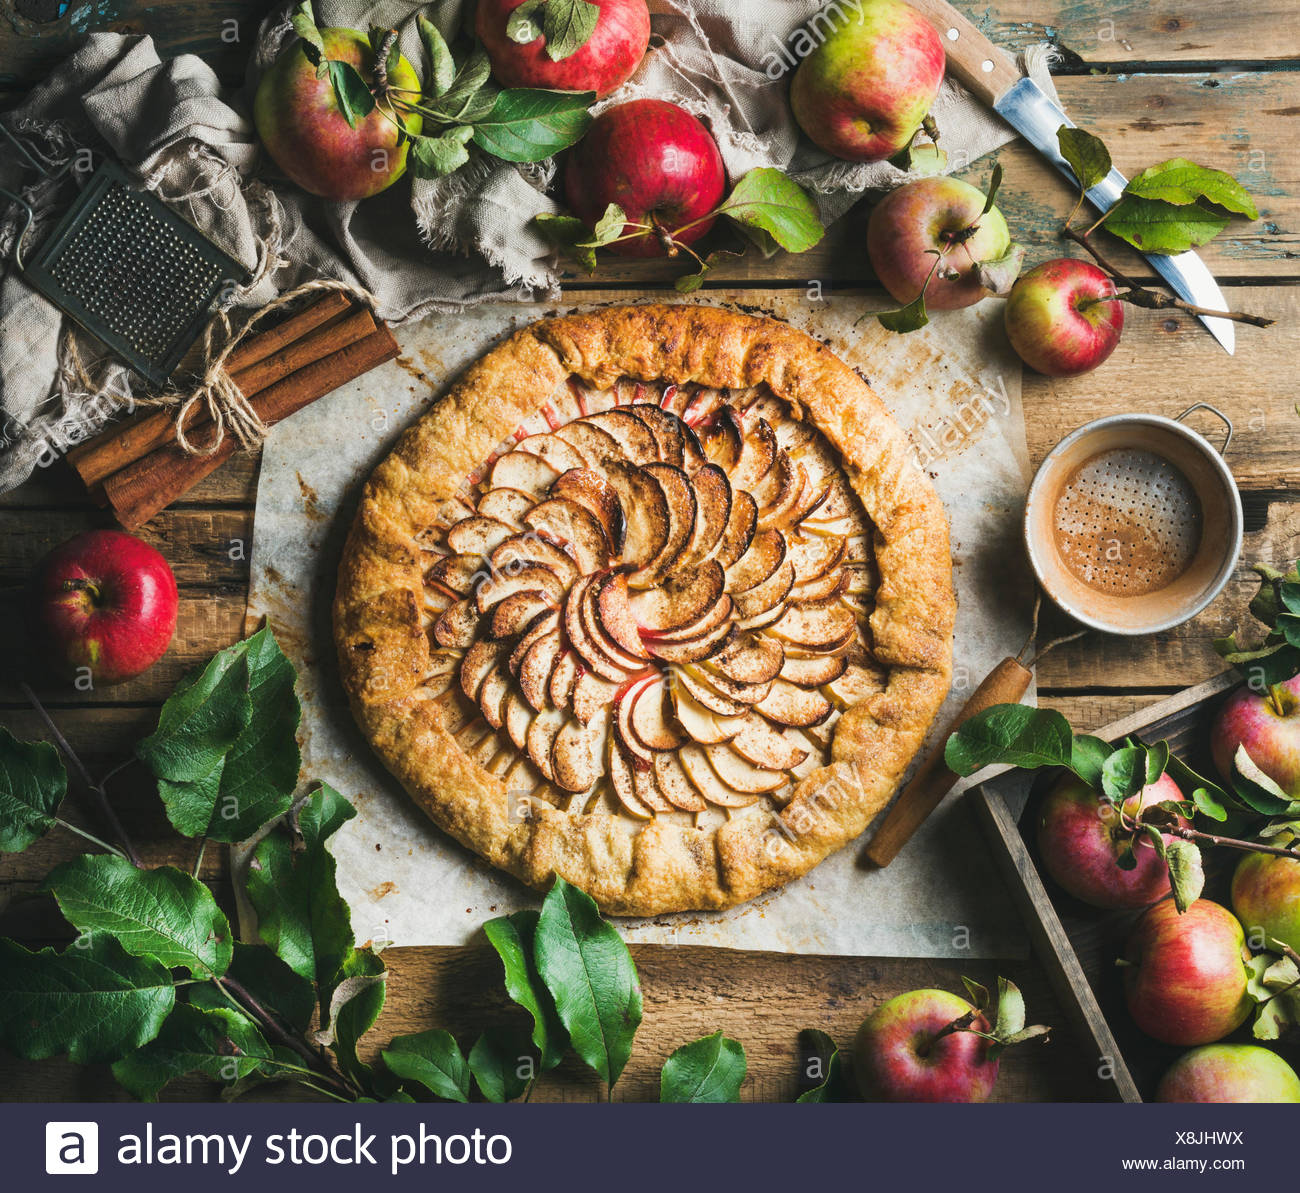 Apple crostata pie with cinnamon served with fresh garden apples with leaves on rustic wooden background, top view, horizontal c - Stock Image